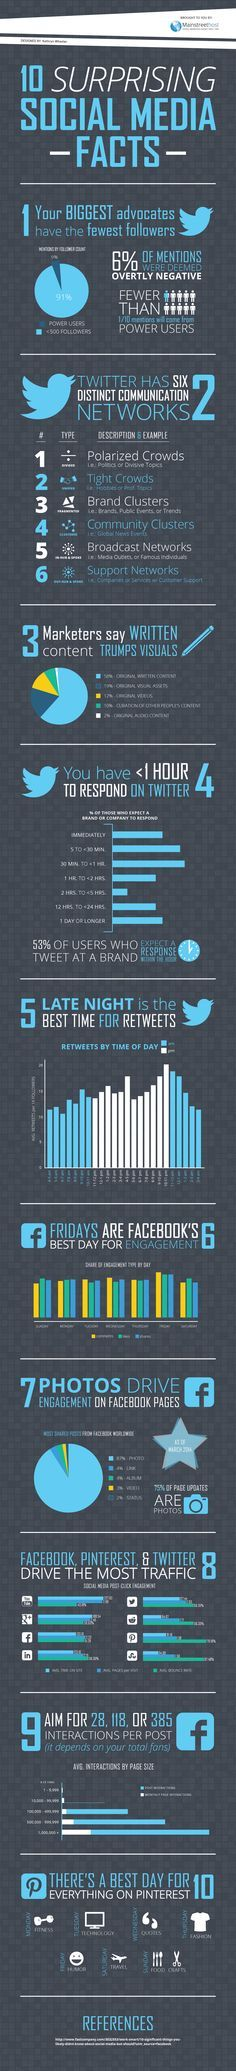 10 Surprising Social Media Facts #healthcoach #wellnesscoach #healthiswealth #infografía